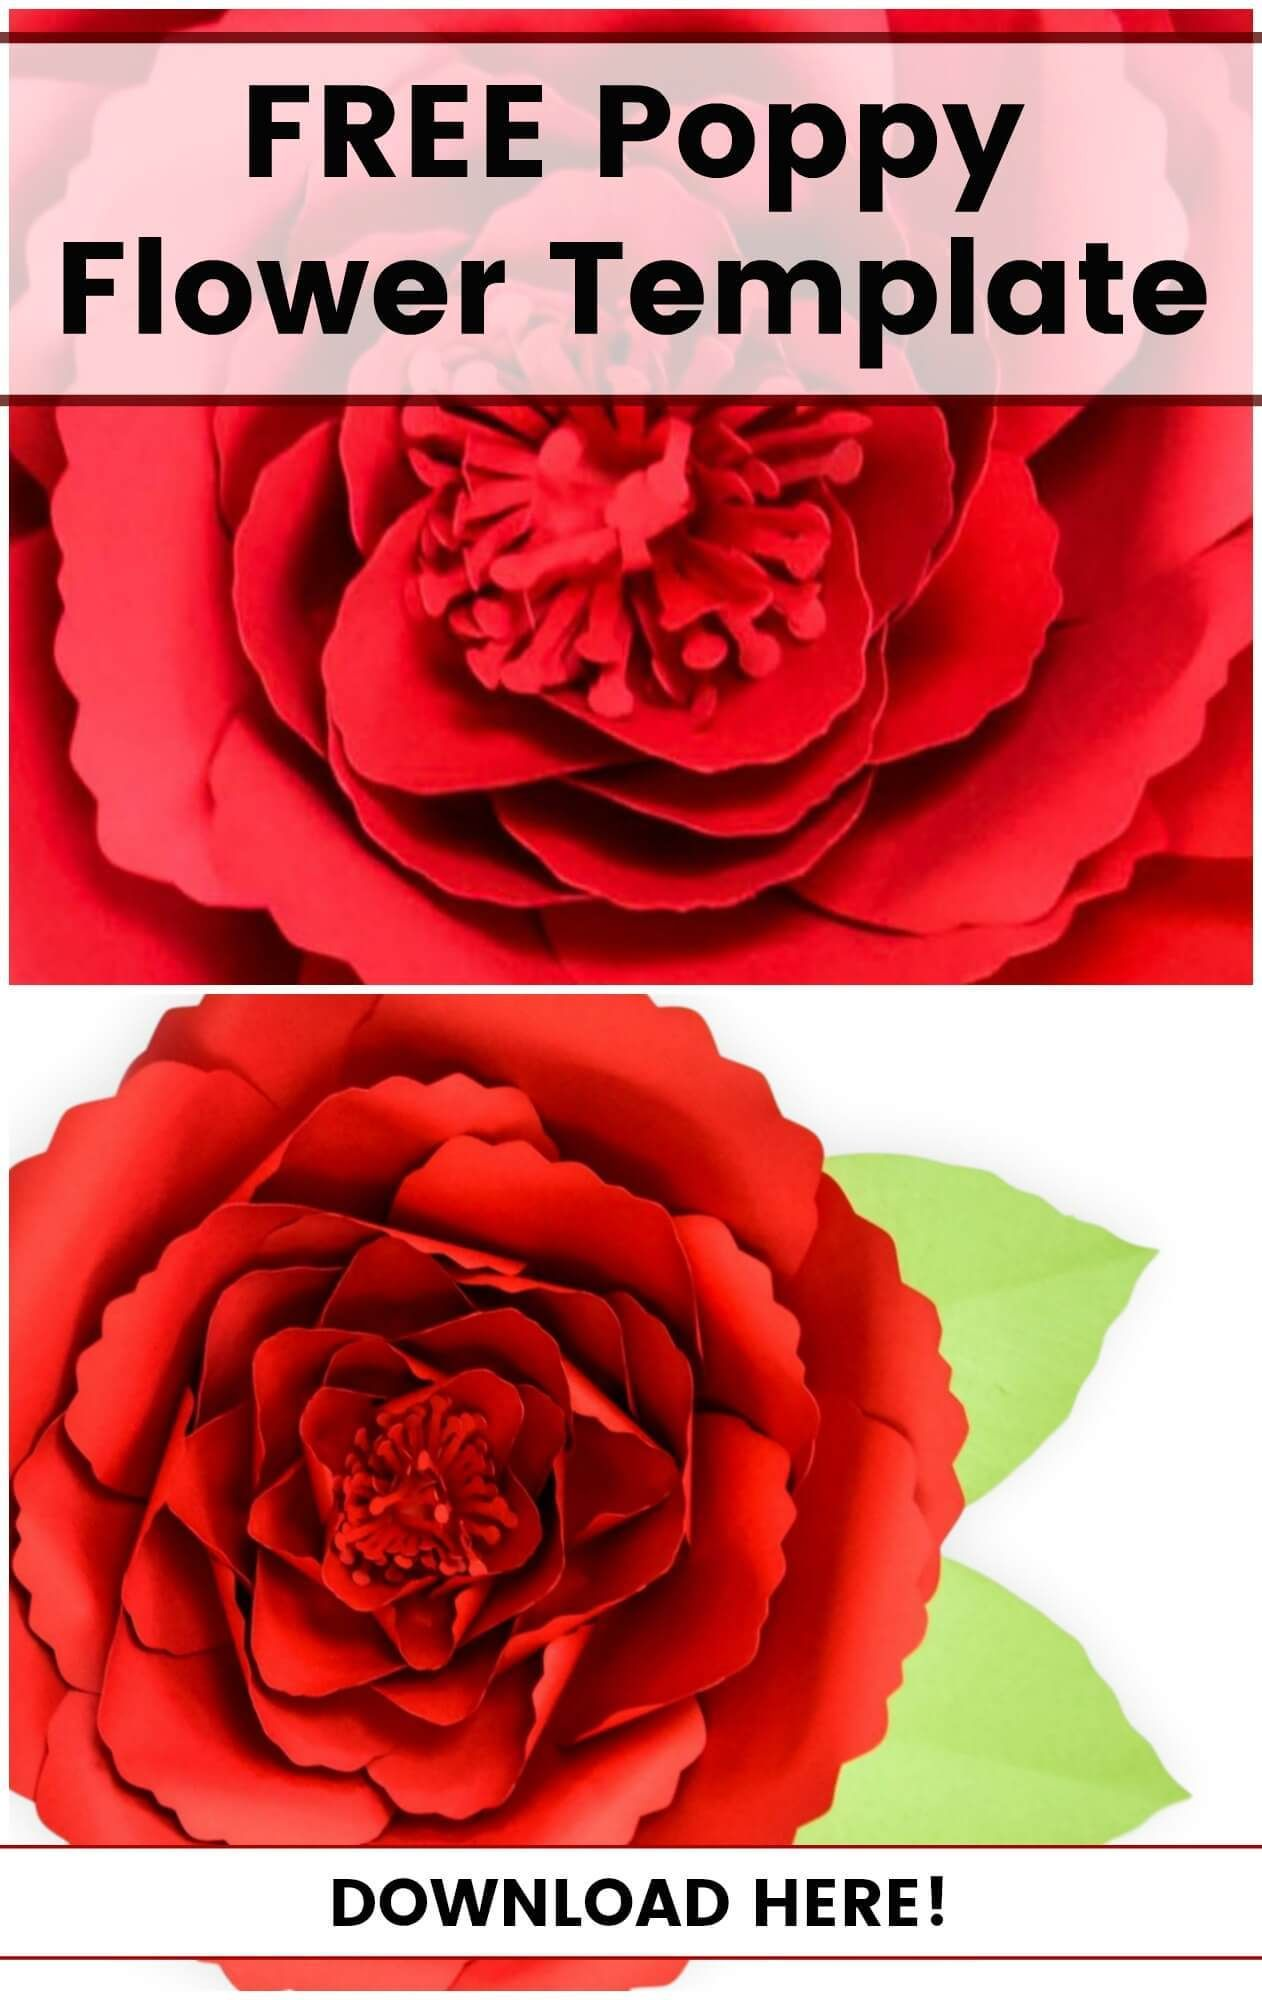 Free Paper Flower Templates How to Make Giant Poppy Paper